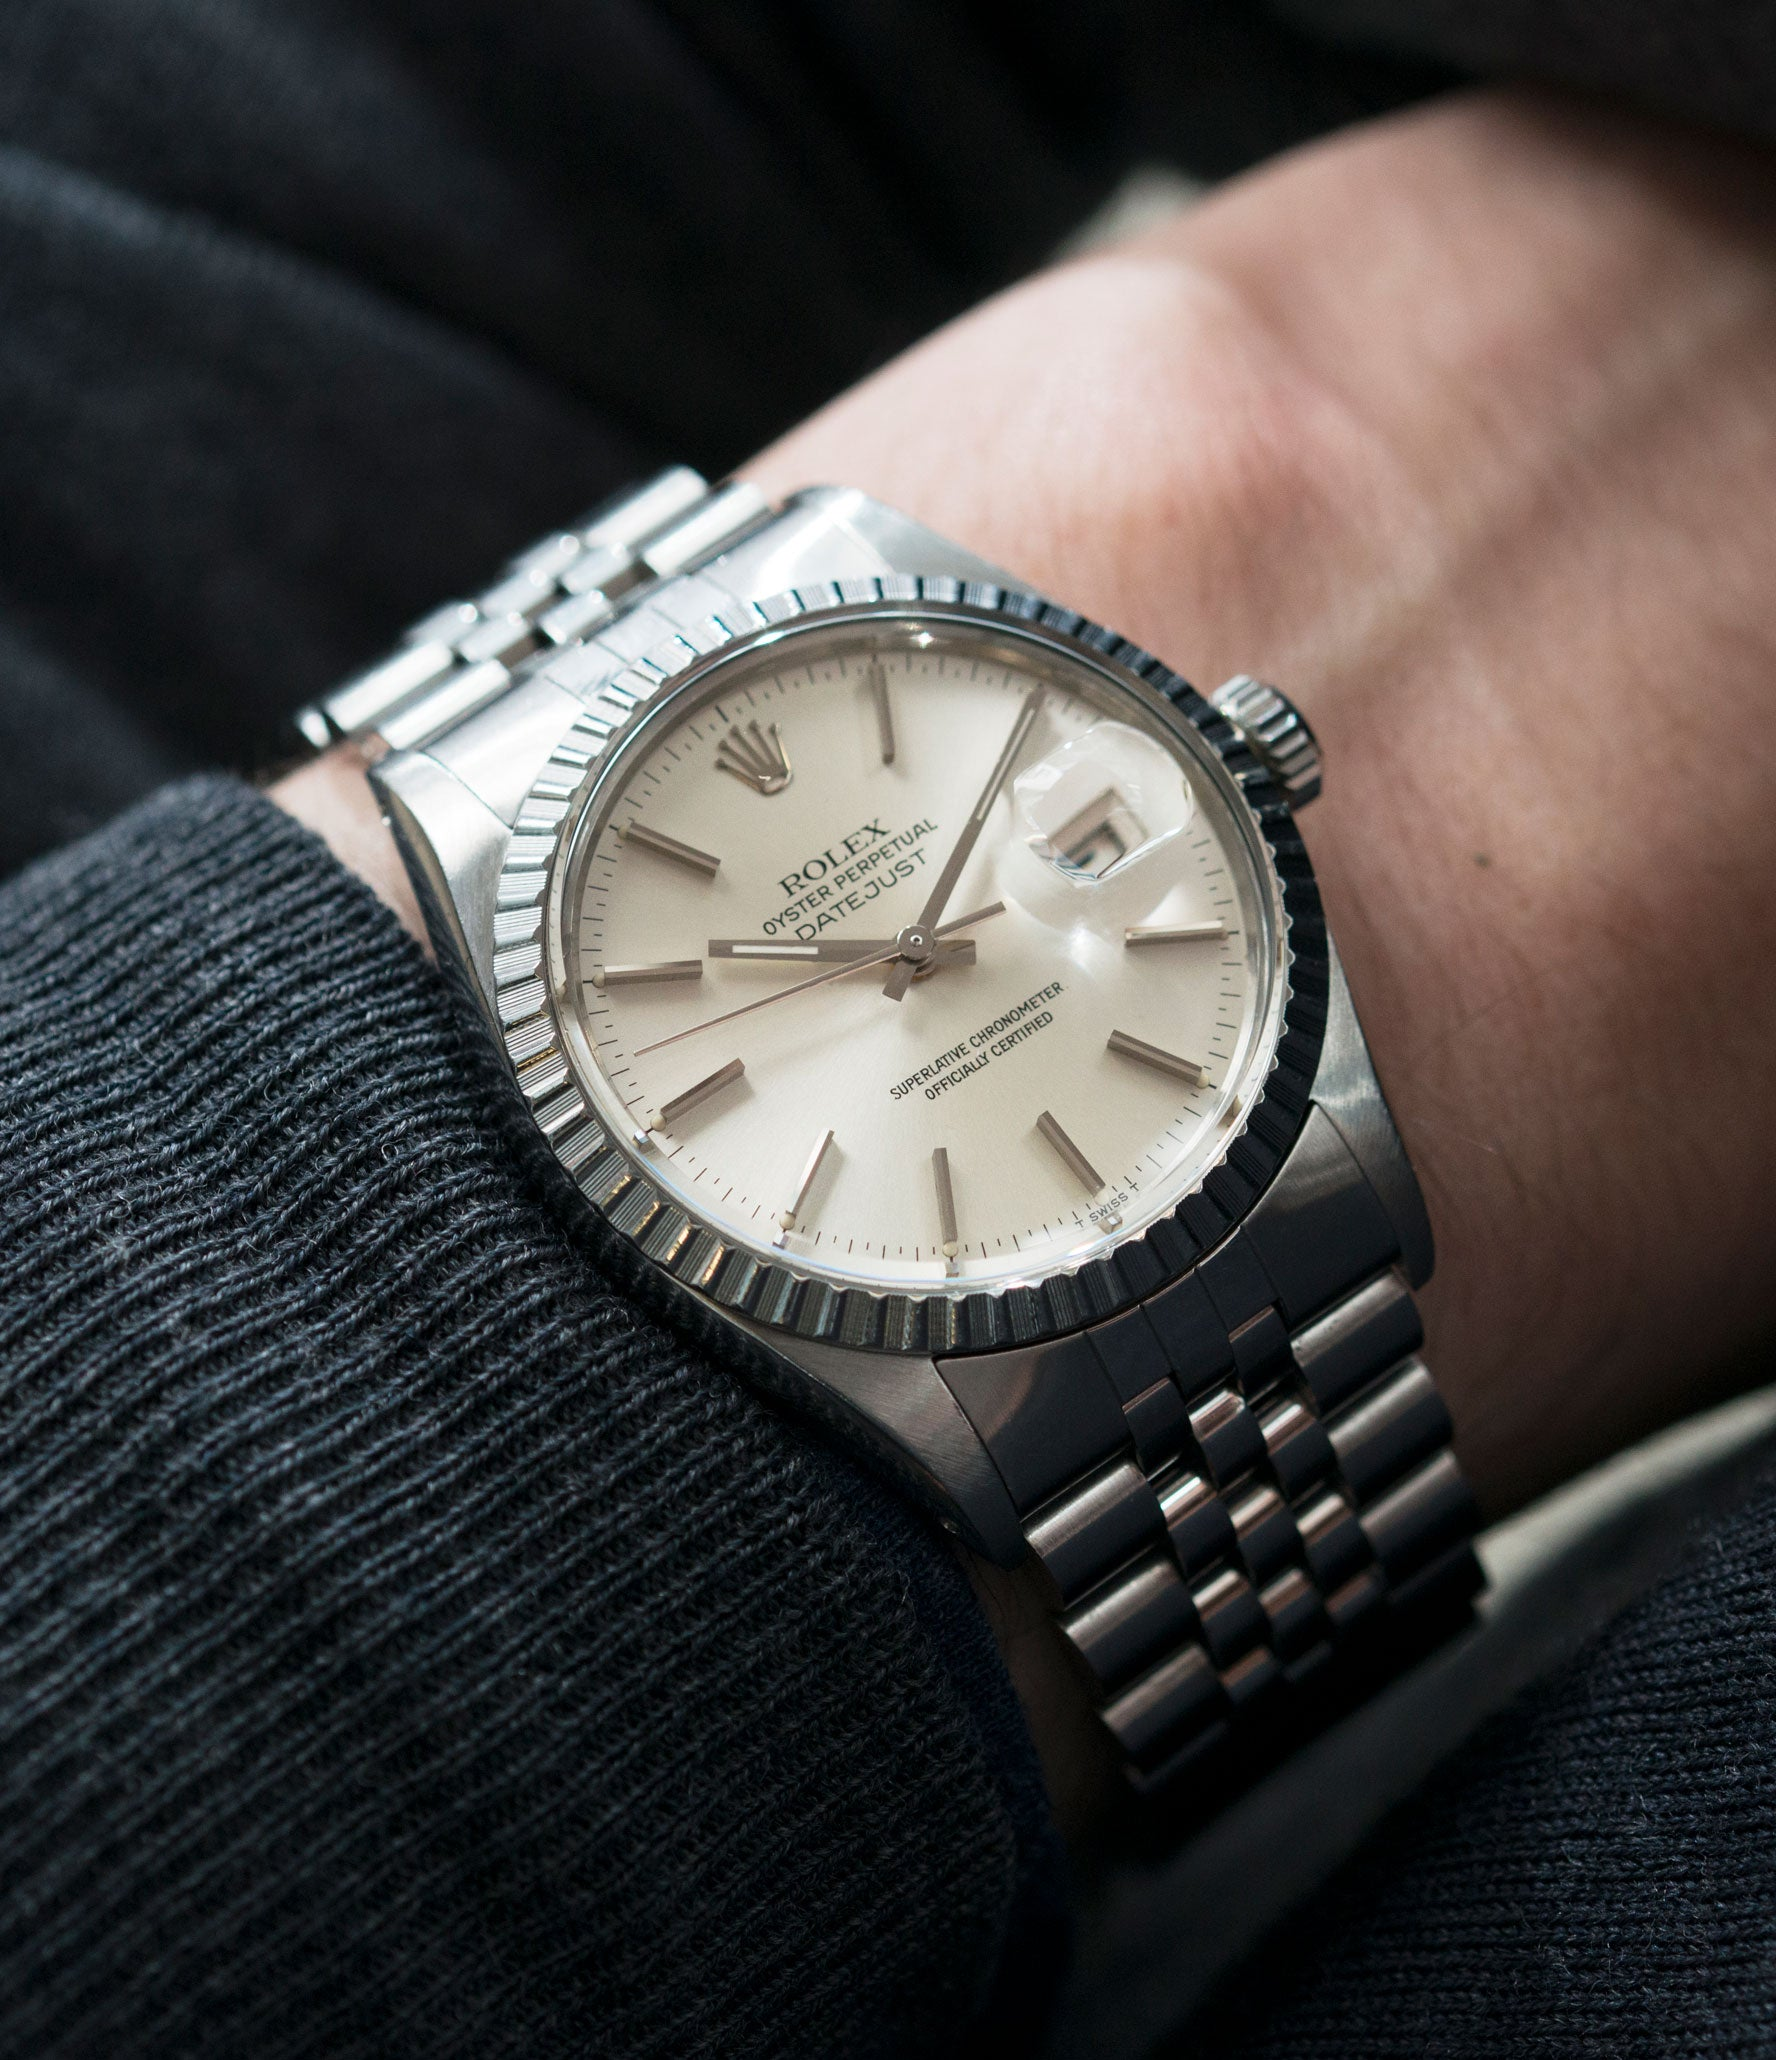 classic dress sports watch Rolex Datejust 16030 steel automatic silver dial watch Jubilee bracelet for sale online at A Collected Man London UK vintage watch specialist